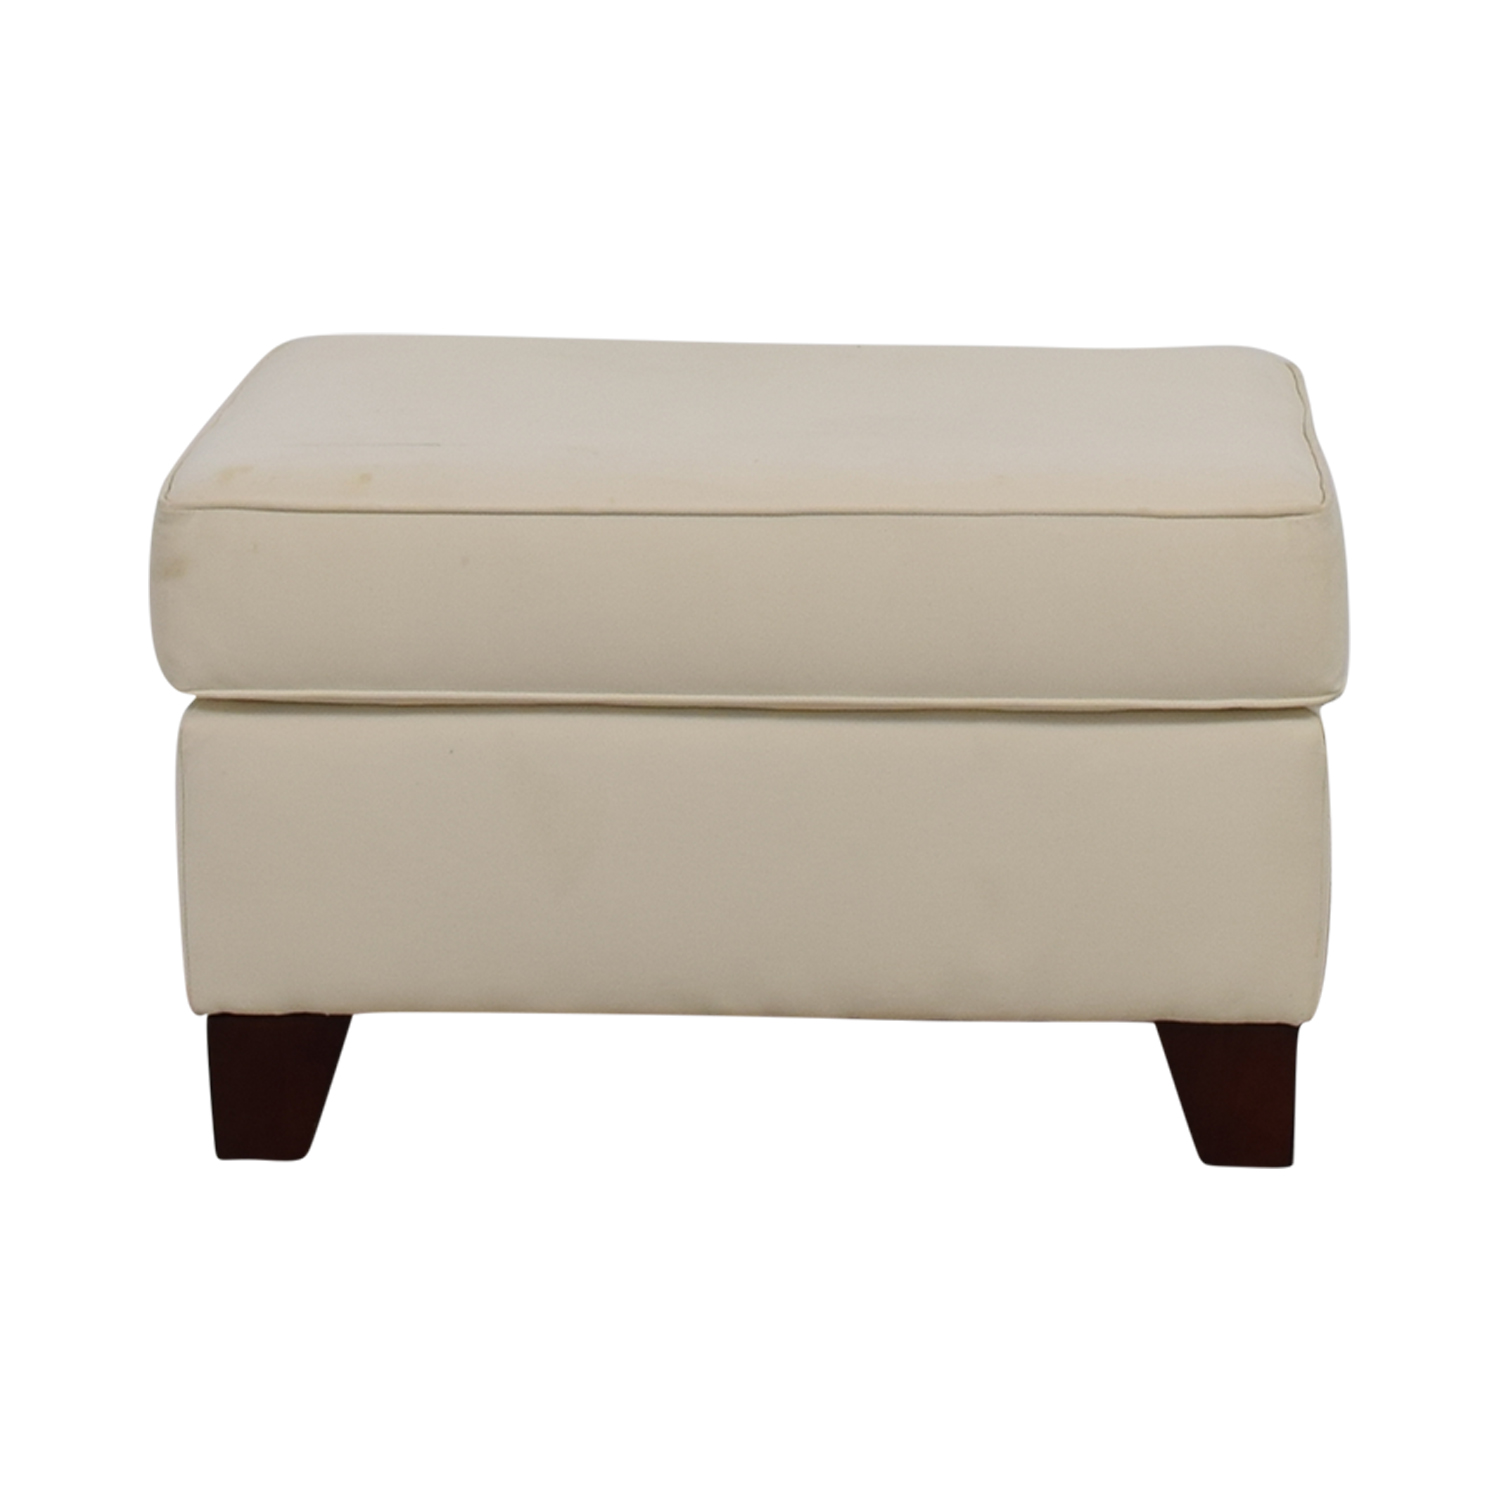 Pottery Barn Pottery Barn White Ottoman second hand